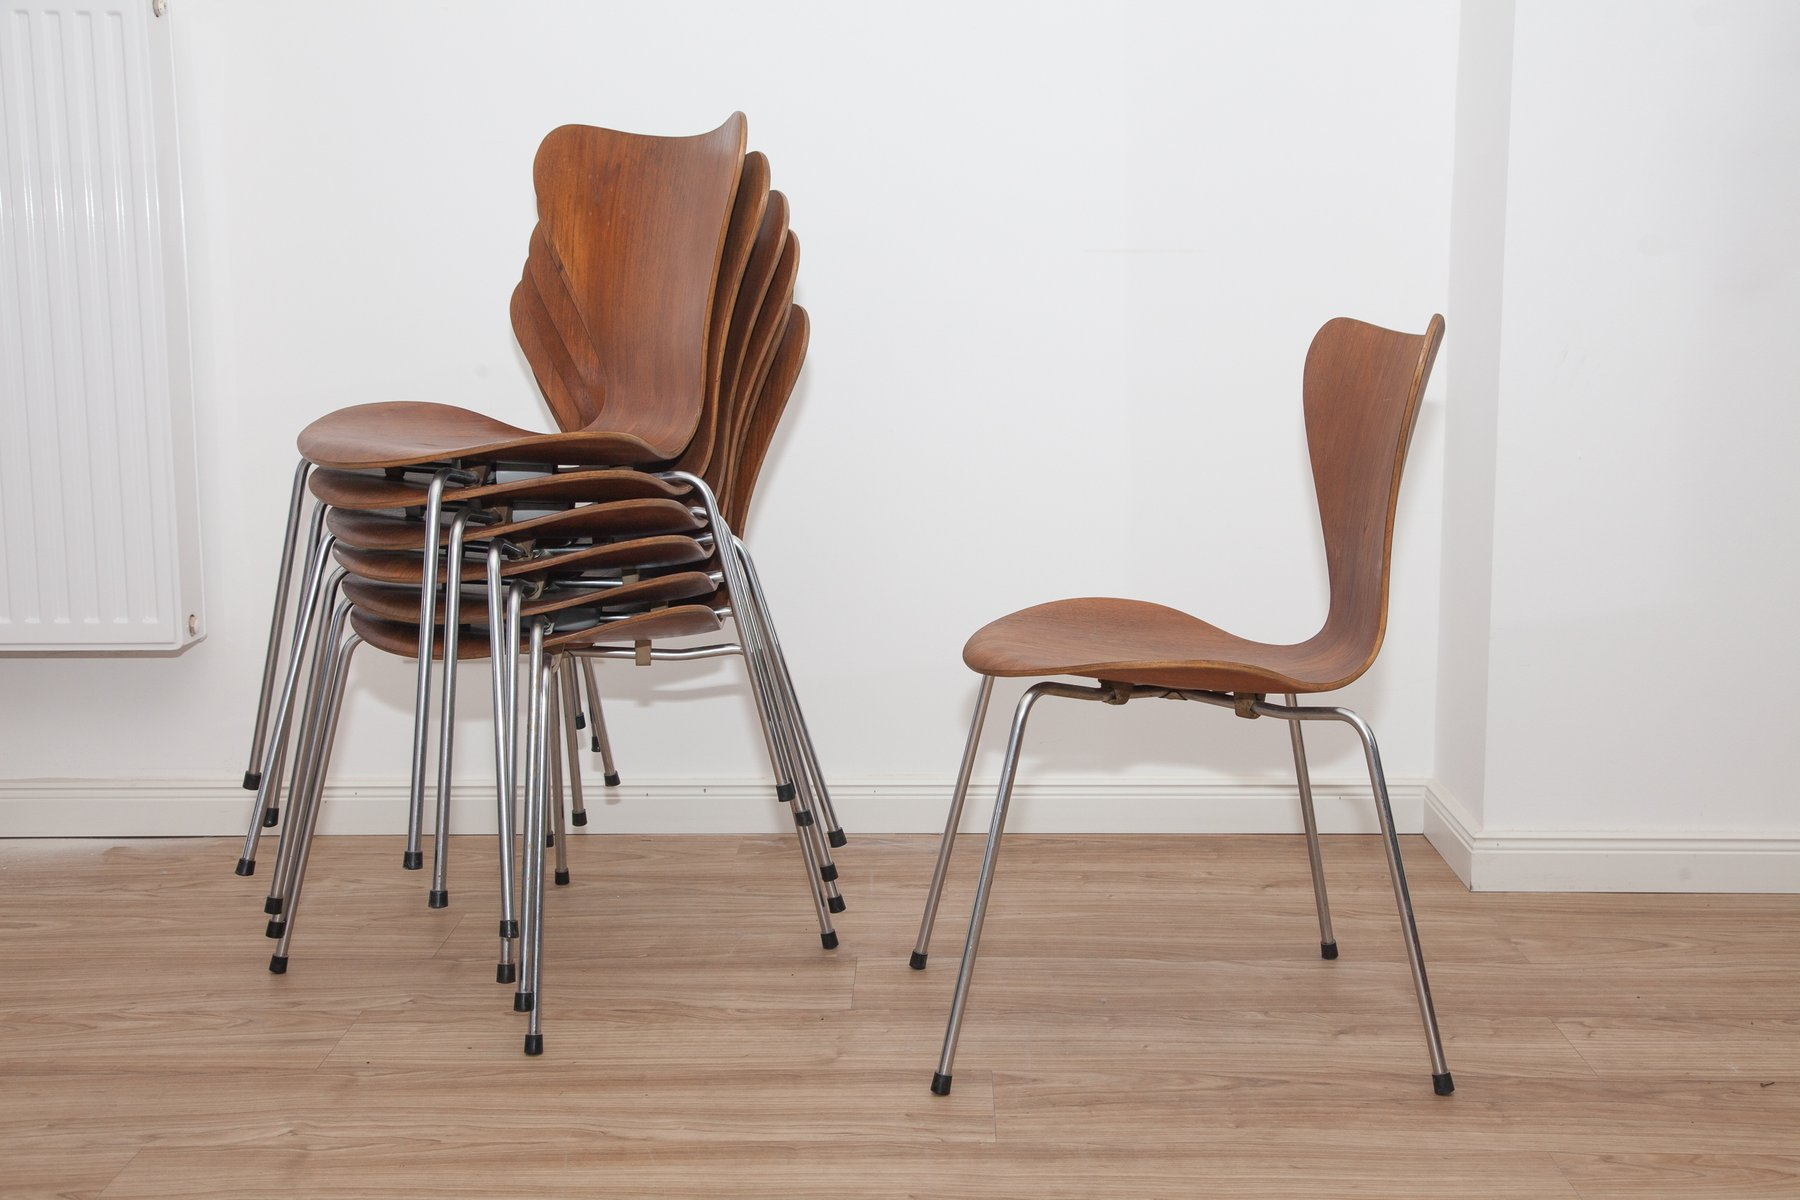 model 3107 teak plywood ant chairs by arne jacobsen for fritz hansen 1960s set of 7 for sale. Black Bedroom Furniture Sets. Home Design Ideas